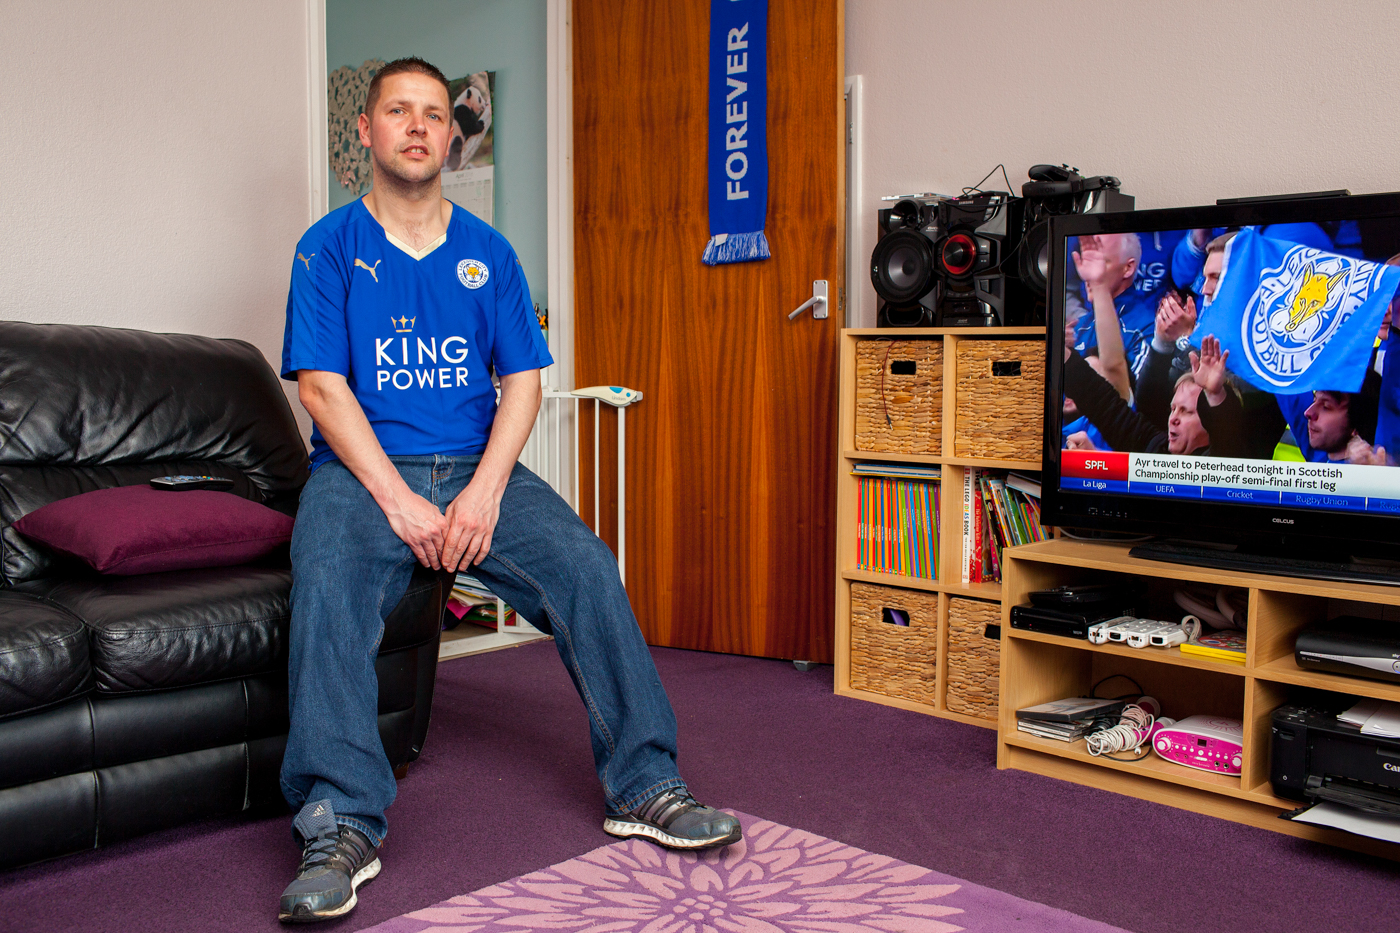 LEICESTER, UK MAY 2016Craig Sawbridge, a Leicester City fanatic at his home in the city.On the 2nd May 2016, Leicester City football club became champions of England for the first time in their 132 year history.Leicester has been dubbed as most multicultural diversified city in England, thanks to scores of people that have flocked the city and who have hailed from different parts of the world. According to the Leicester city council, the city has the highest number of immigrants who have sought both temporary and permanent residence in England. Majority of these immigrants are people who have left their home countries in pursuit of job opportunities in England.  Photo byPeter Dench/Getty Images Assignment forESPN